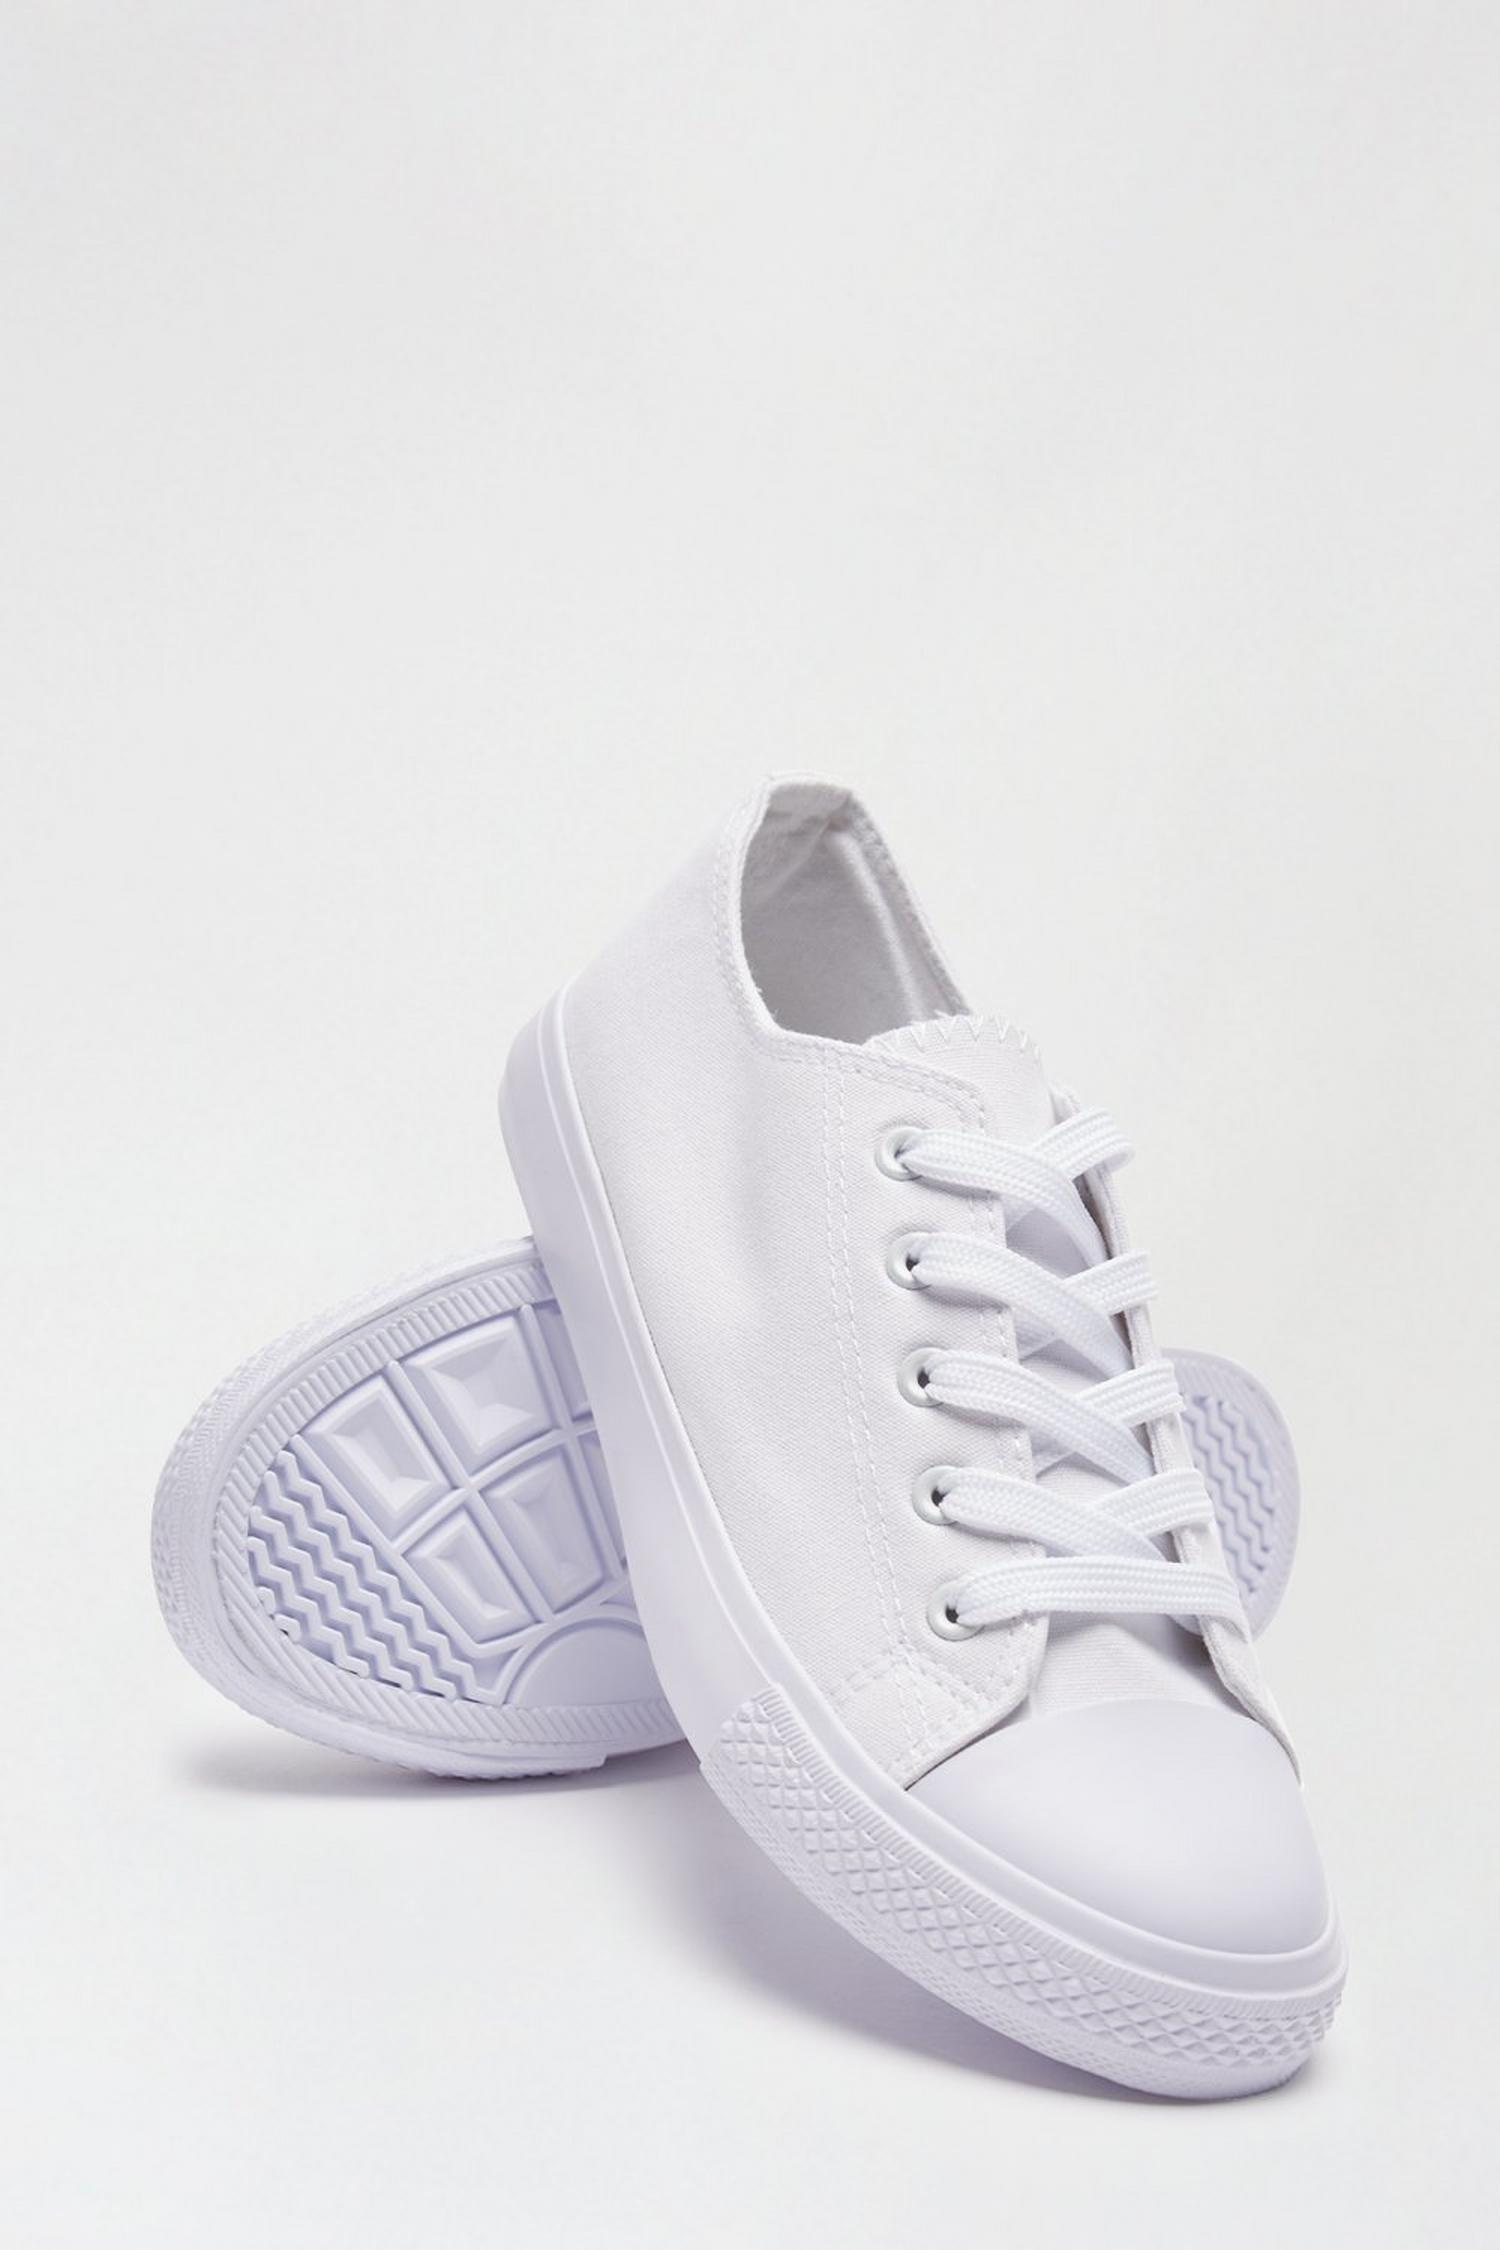 173 White Icon Canvas Trainers image number 4